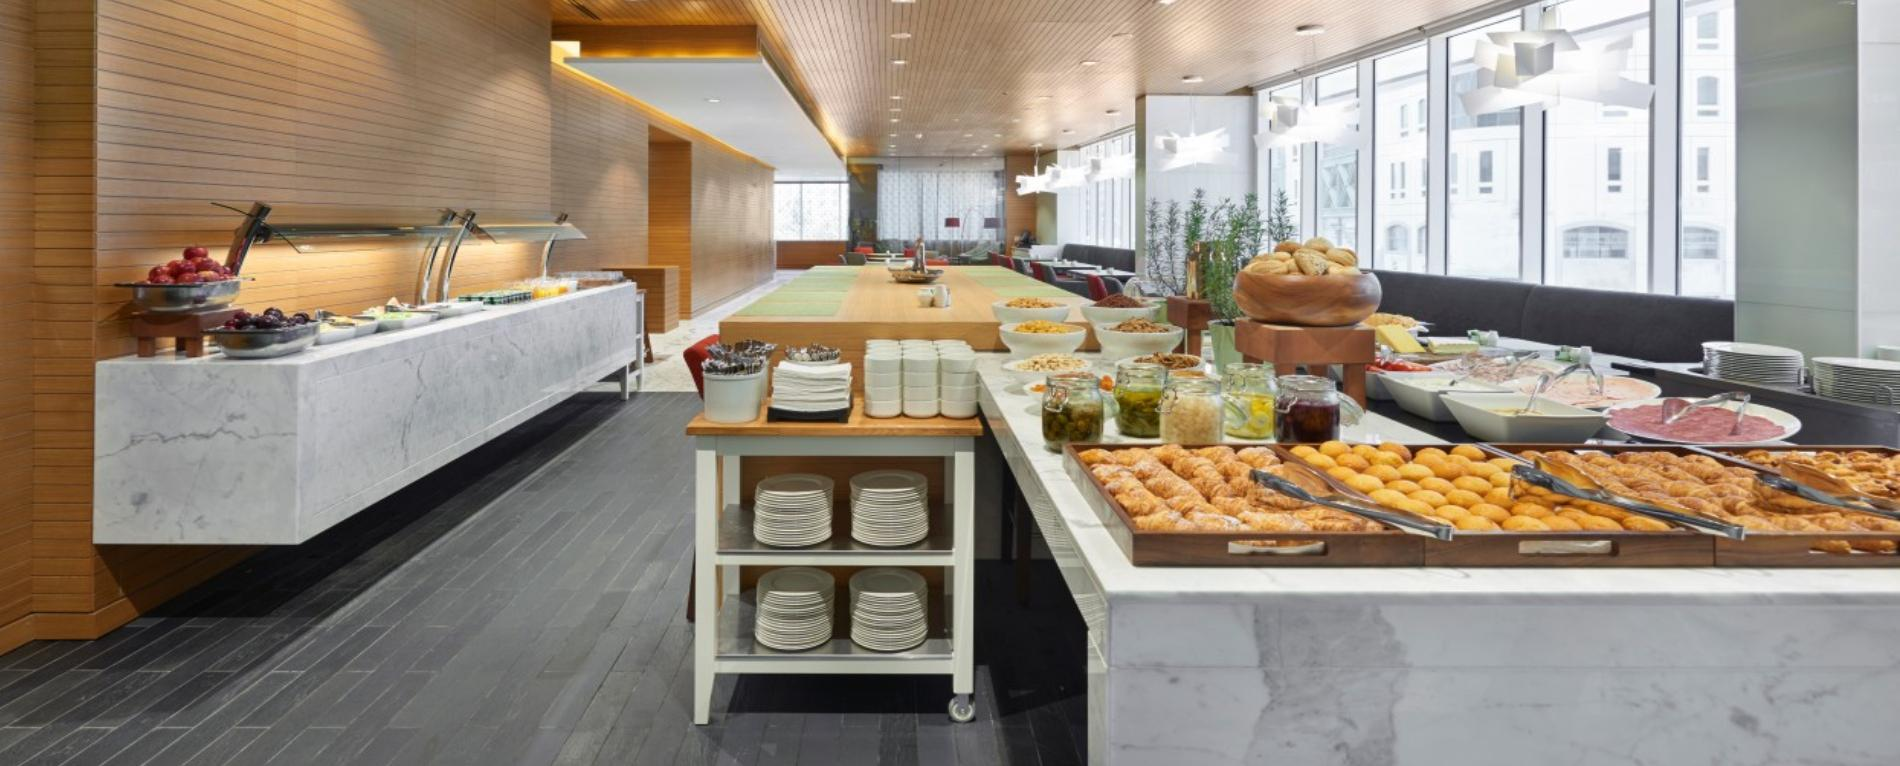 Breakfast Buffet - Hyatt Place Dubai Baniyas Square